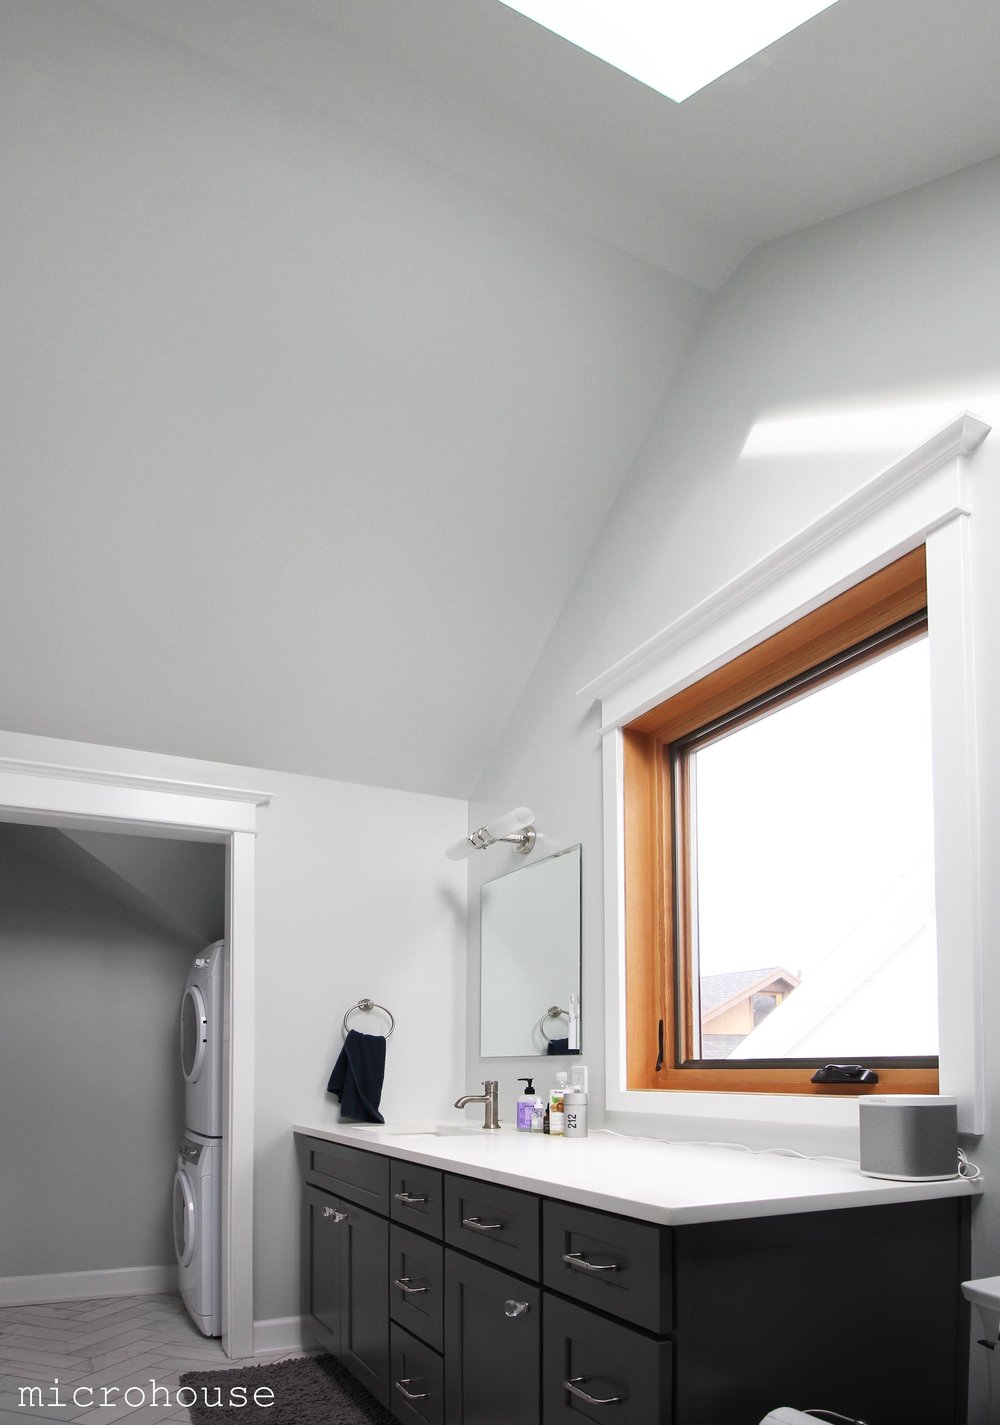 The master bath features vaulted ceilings and skylight.  A laundry room is tucked off to one side under the eaves.